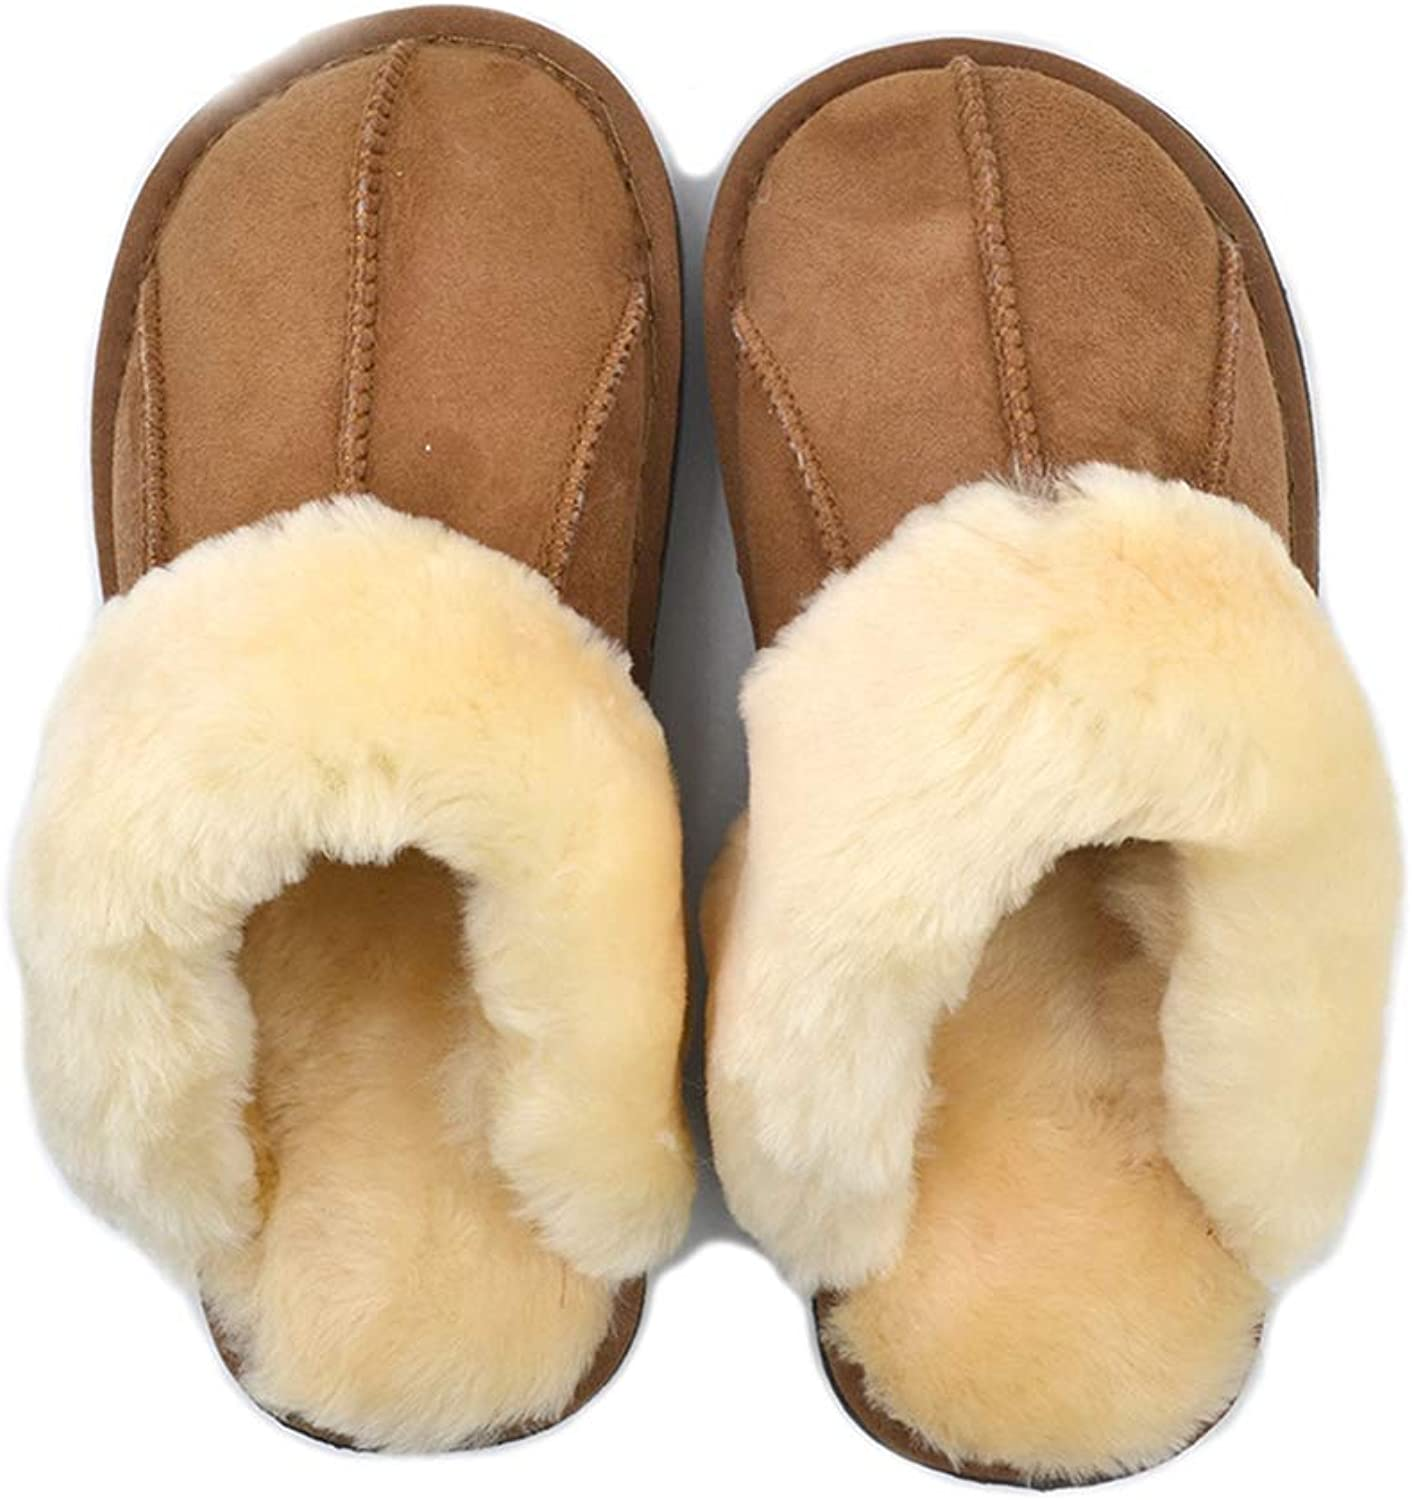 Nafanio Sheep Slippers New Home Footwear Man Women Fashion Korean Indoor Outdoor Air Conditioning Arch Support shoes